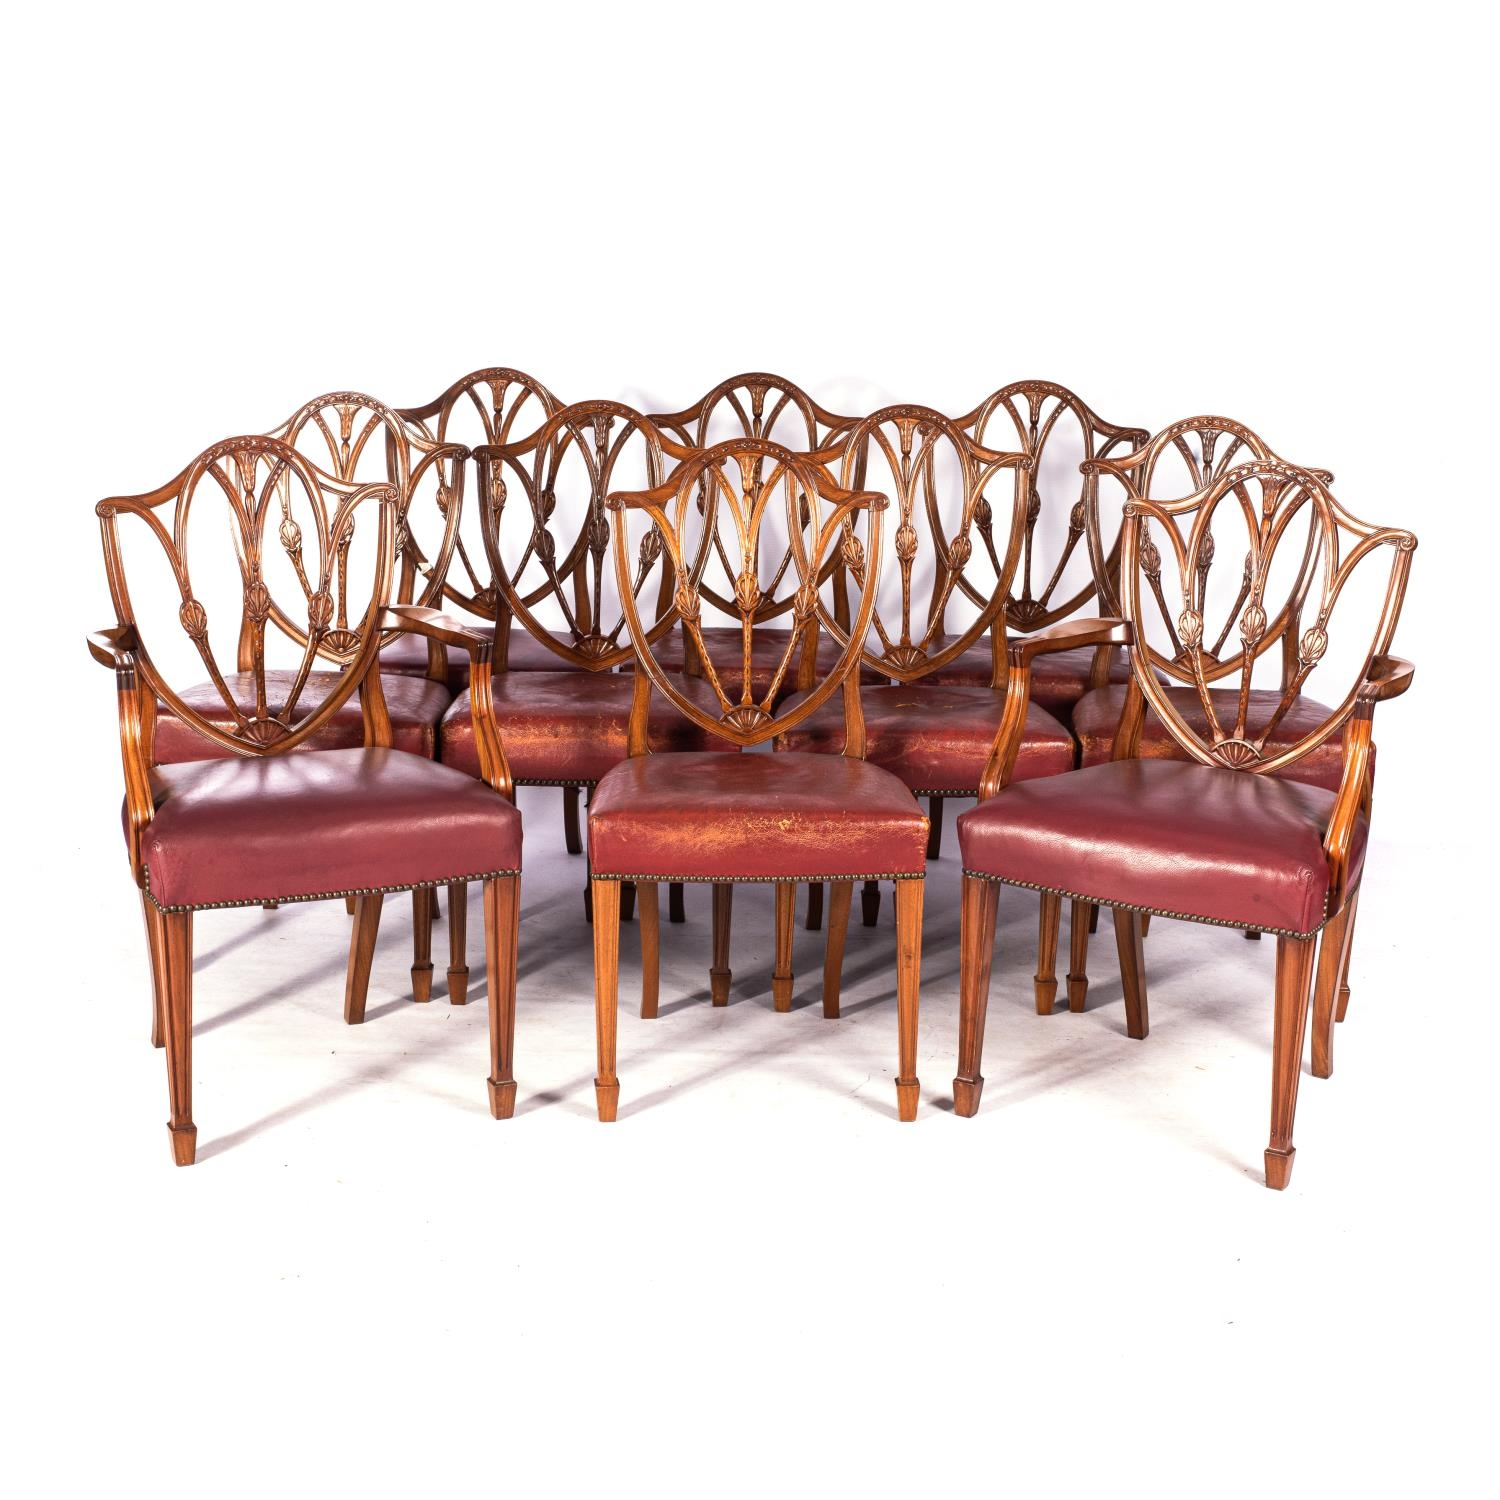 A SET OF TEN HEPPLEWHITE STYLE MAHOGANY DINING CHAIRS